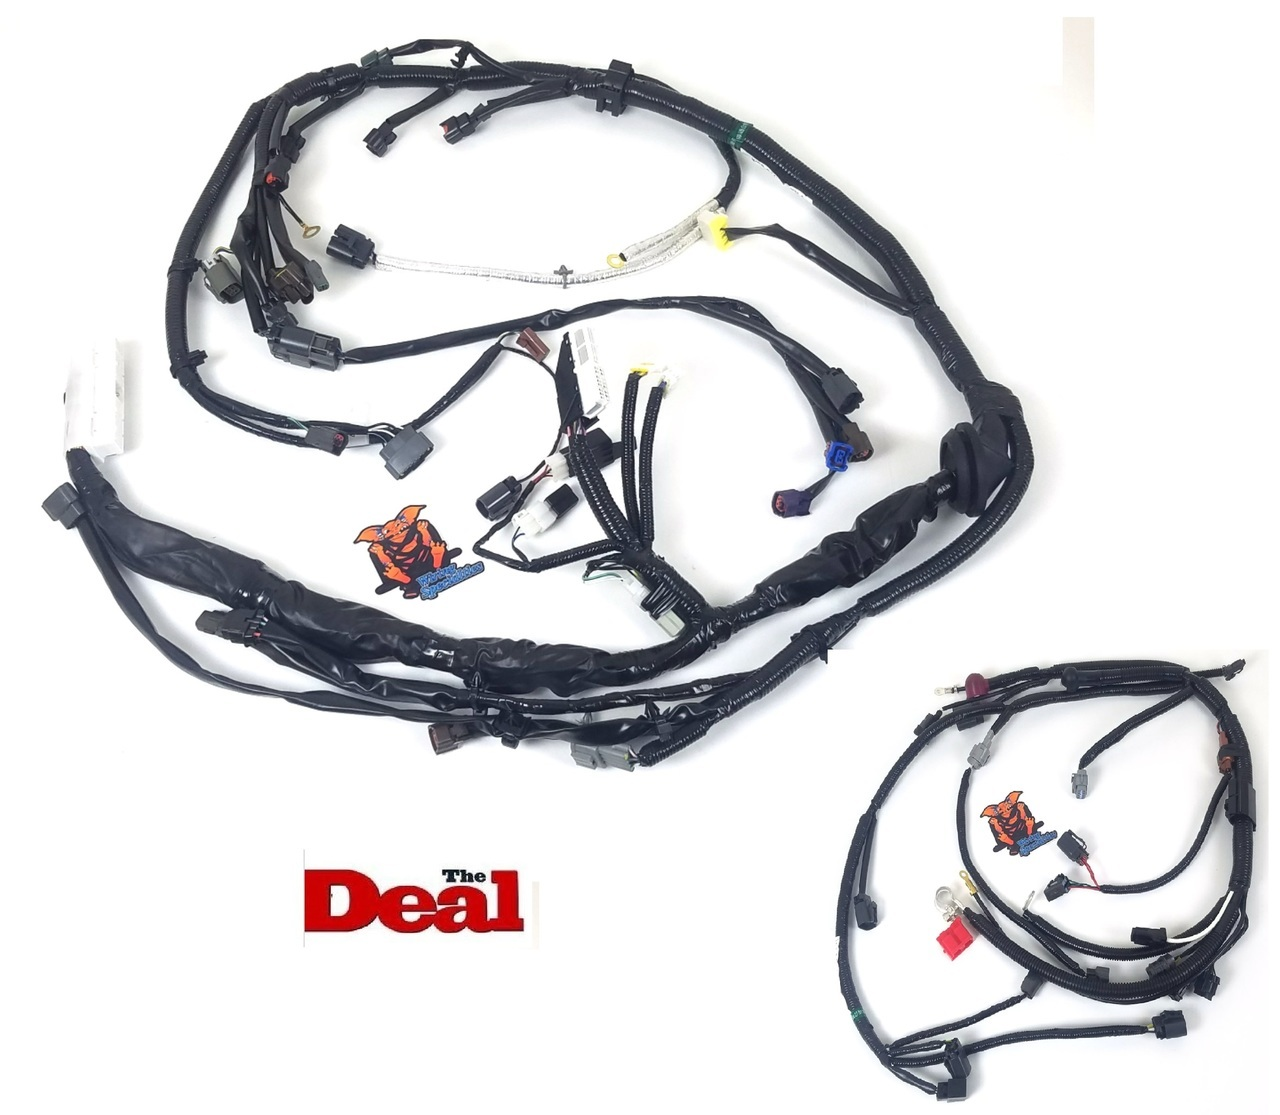 wiring specialties s14 240sx ka24de wiring harness combo oem series tf works touge factory [ 1280 x 1115 Pixel ]